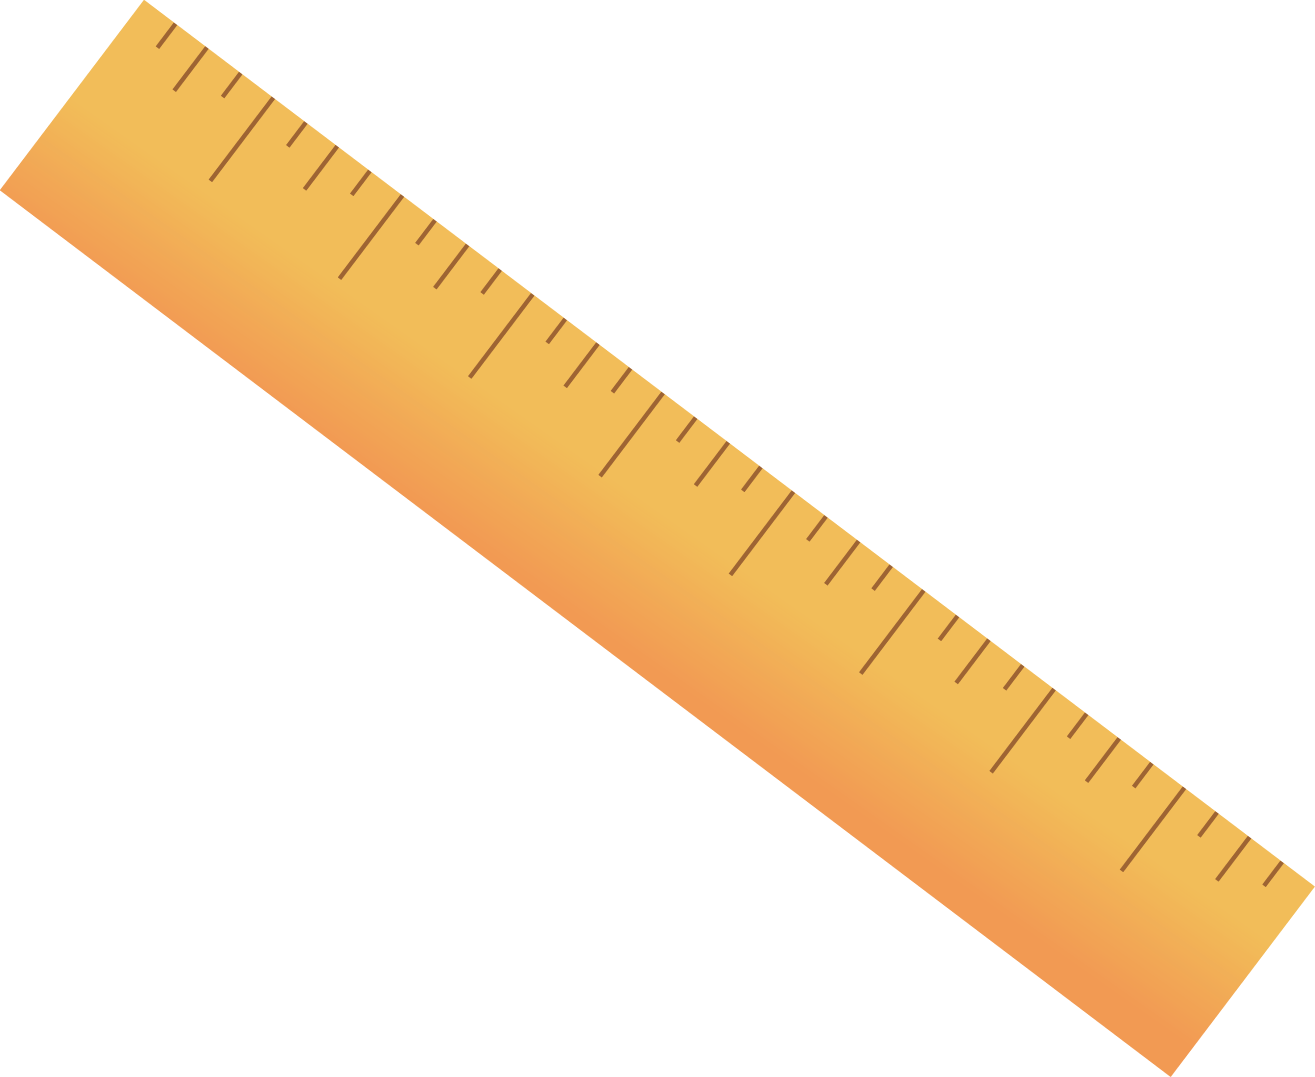 Ruler Drawing Clip art.